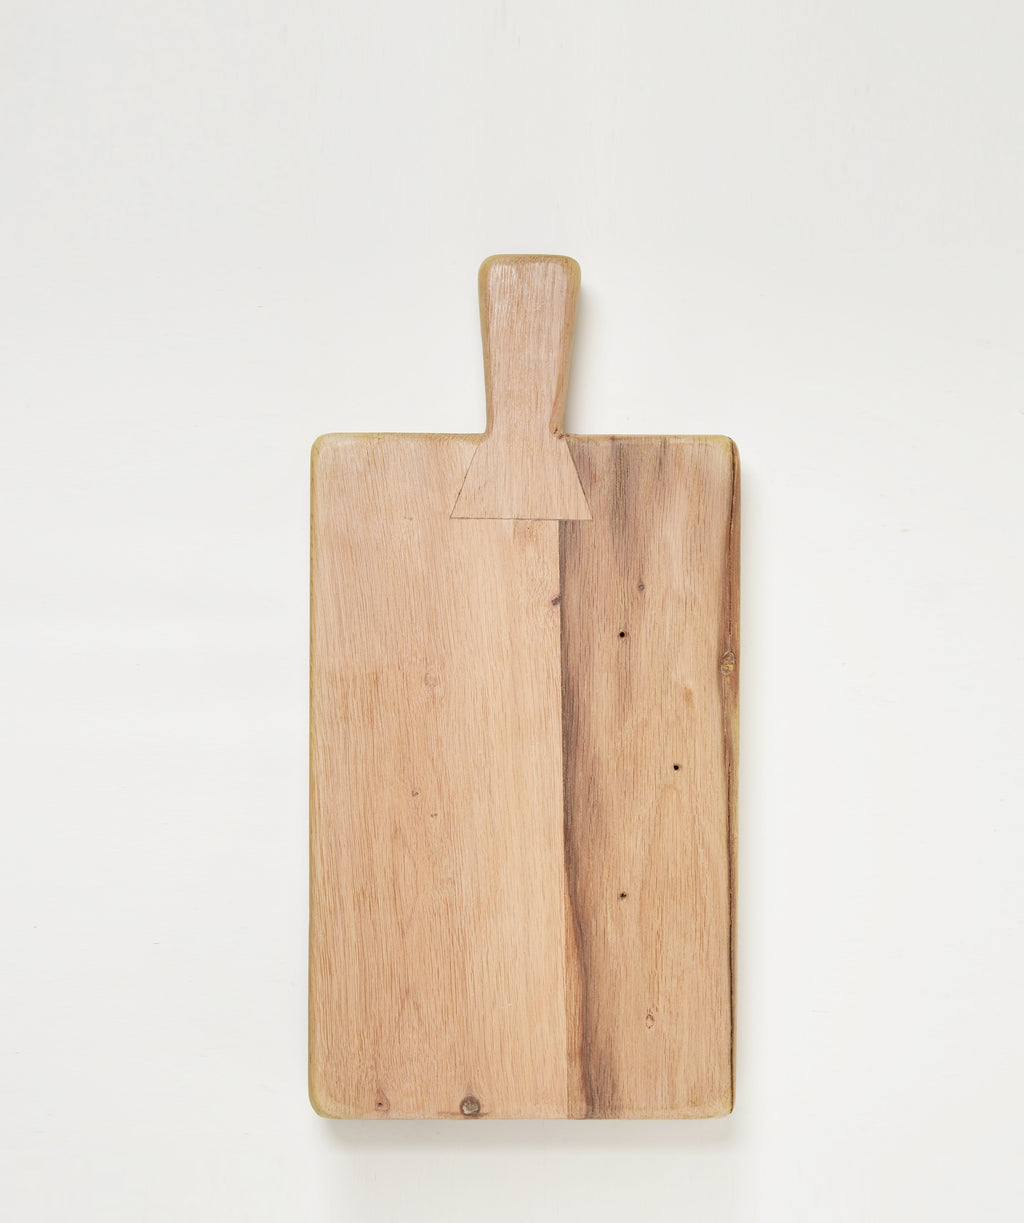 Small Unico Cutting Board - Il Buco Vita